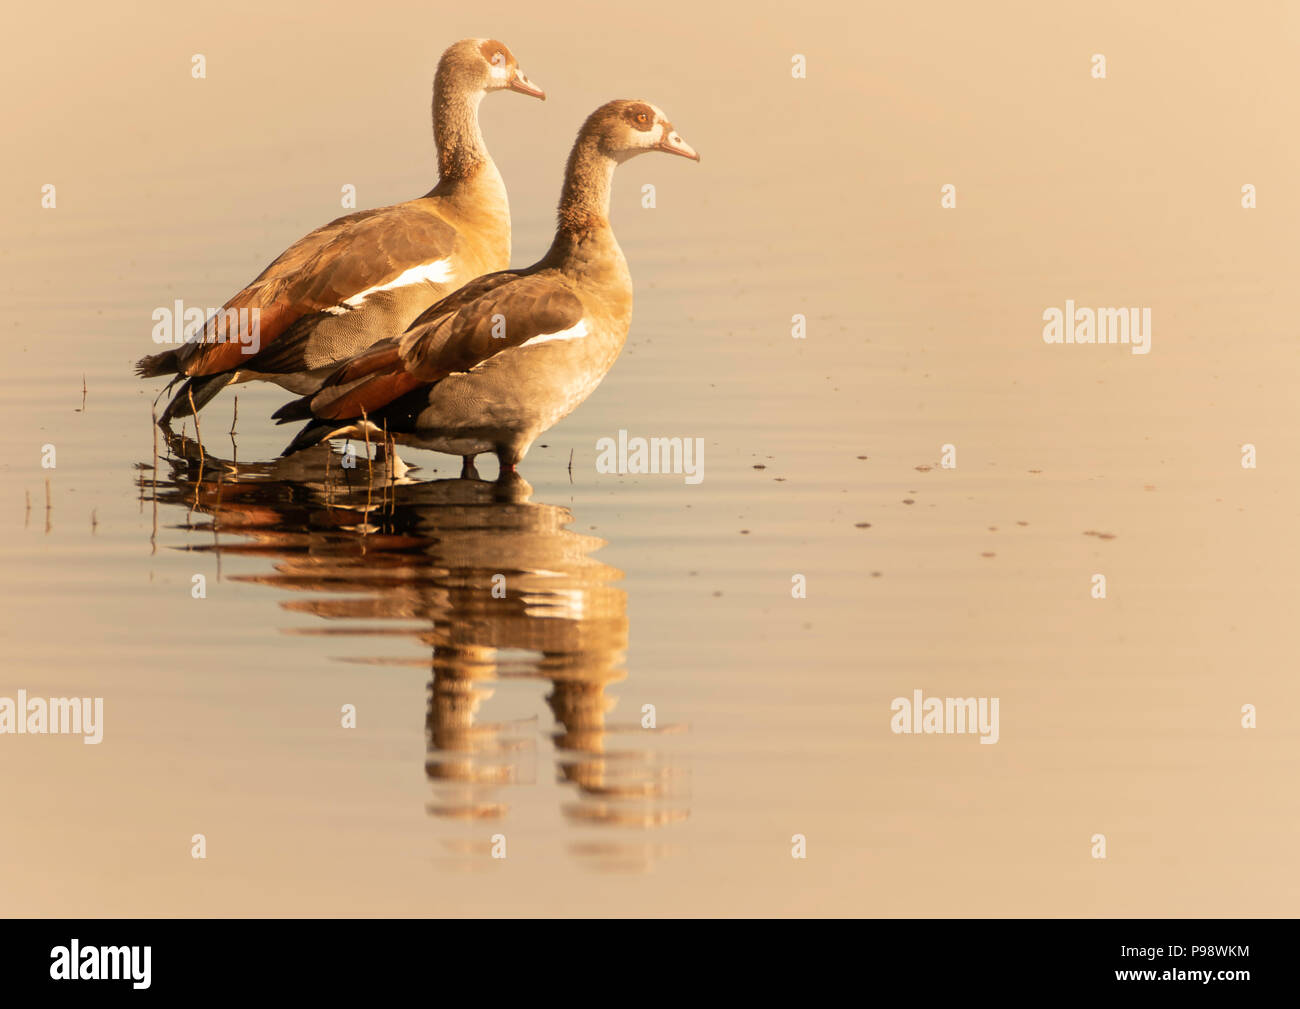 Pair of Egyptian Geese standing in shallow water, Chobe River, Botswana - Stock Image